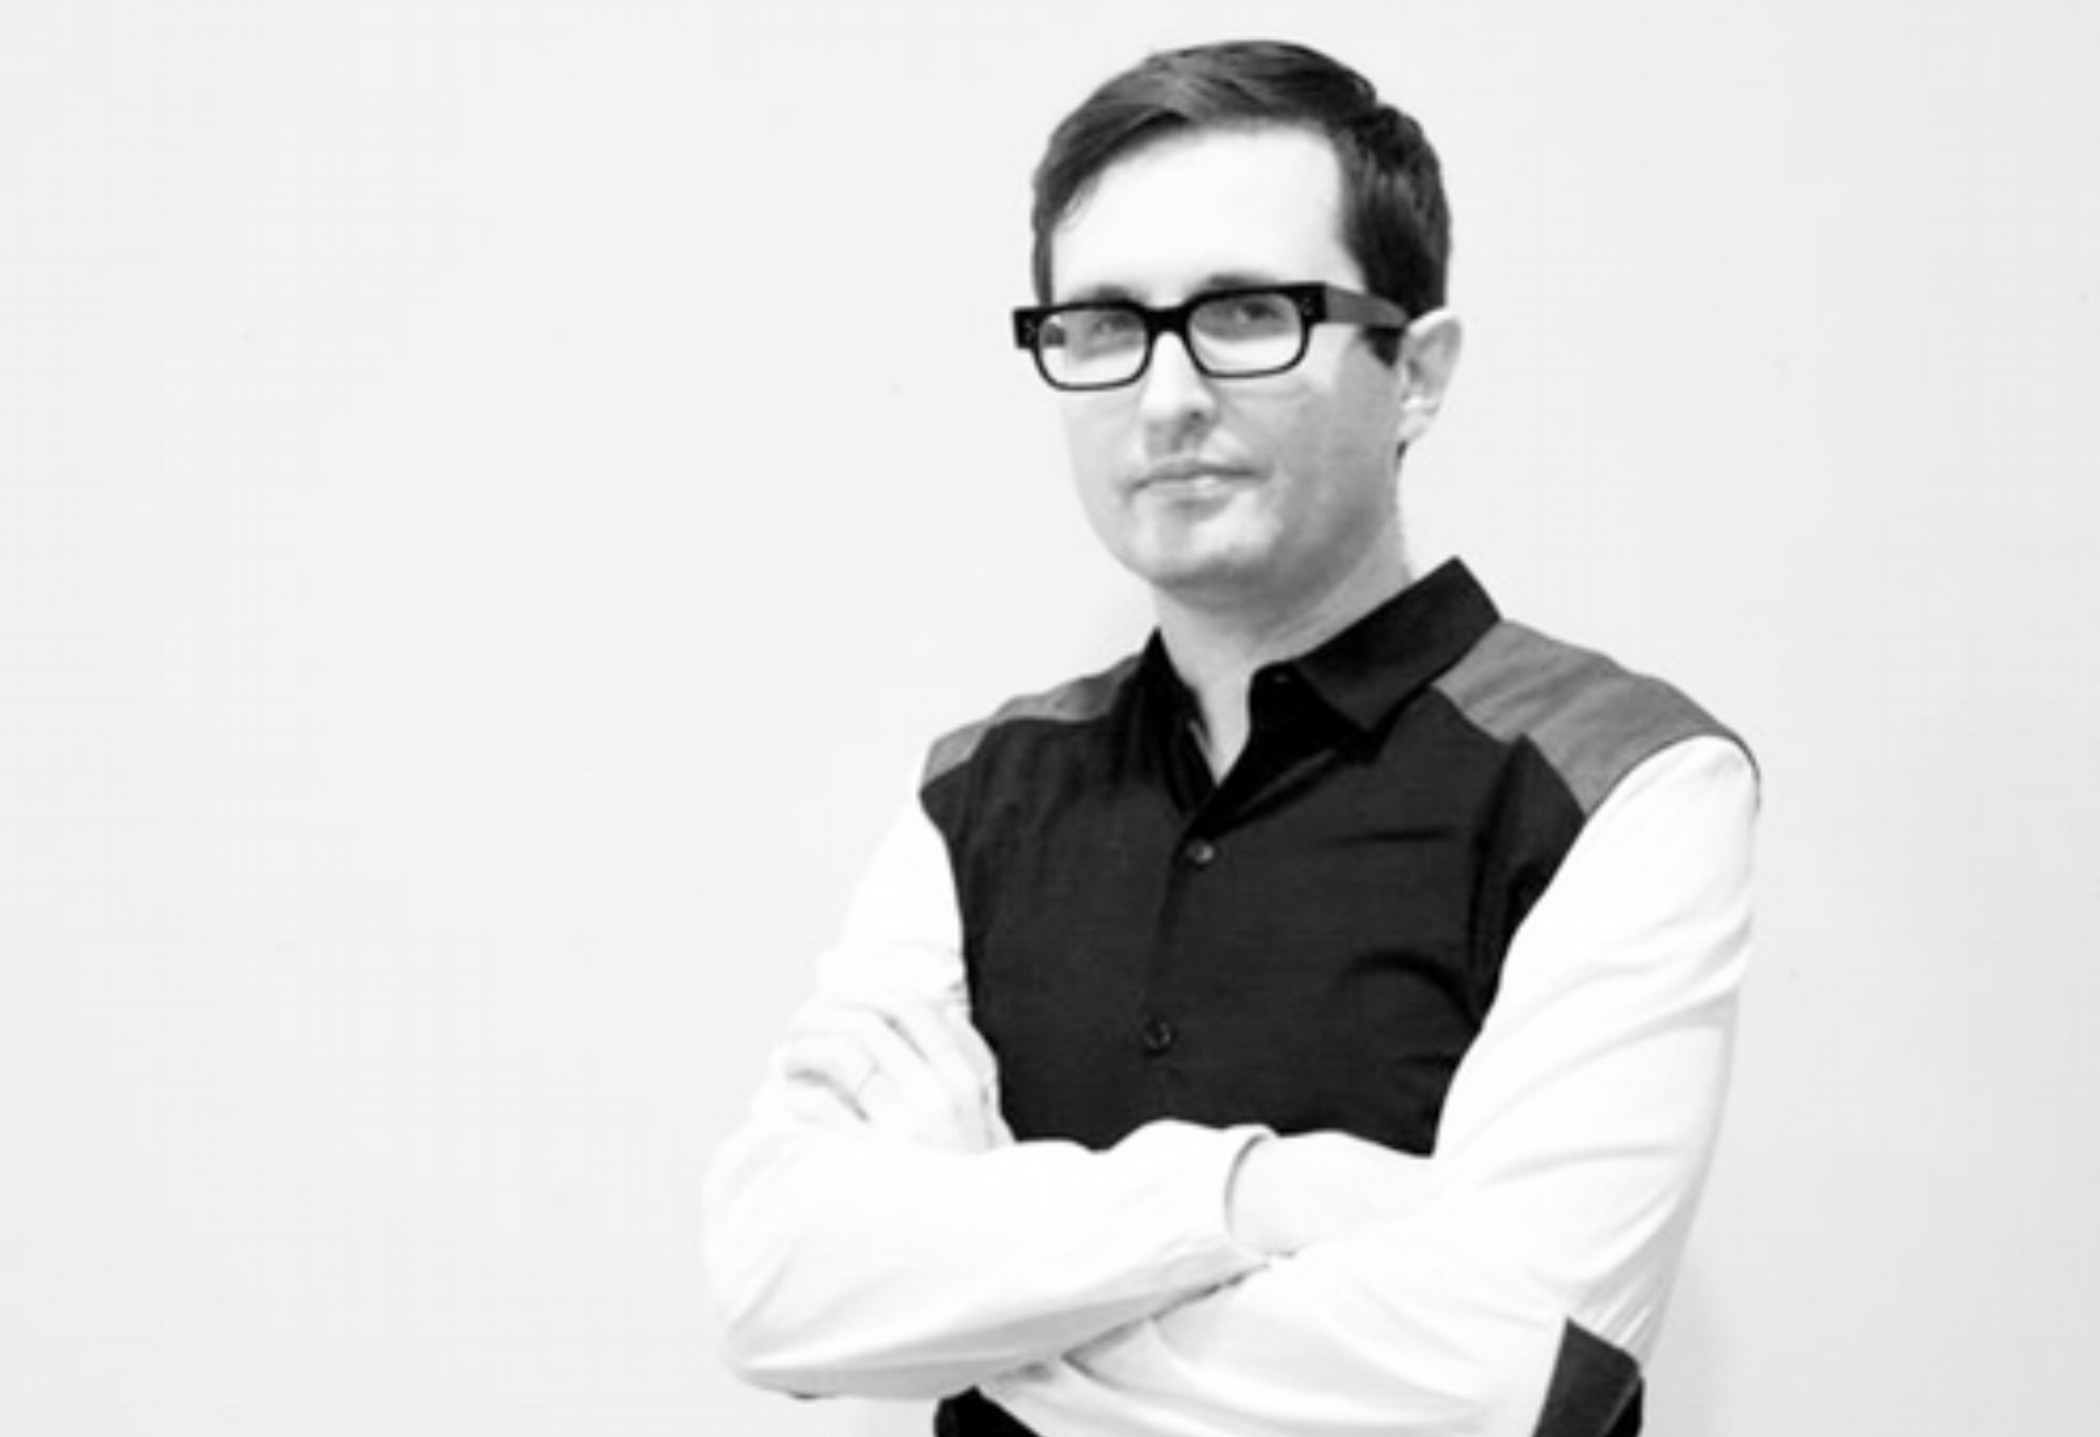 Andrew Witt  - Upcycling Architecture & Design  Witt is an Assistant Professor in Practice in Architecture at the GSD, teaching and researching in the relationship of geometry to perception, construction, automation and culture. He is also co-founder, of Certain Measures.